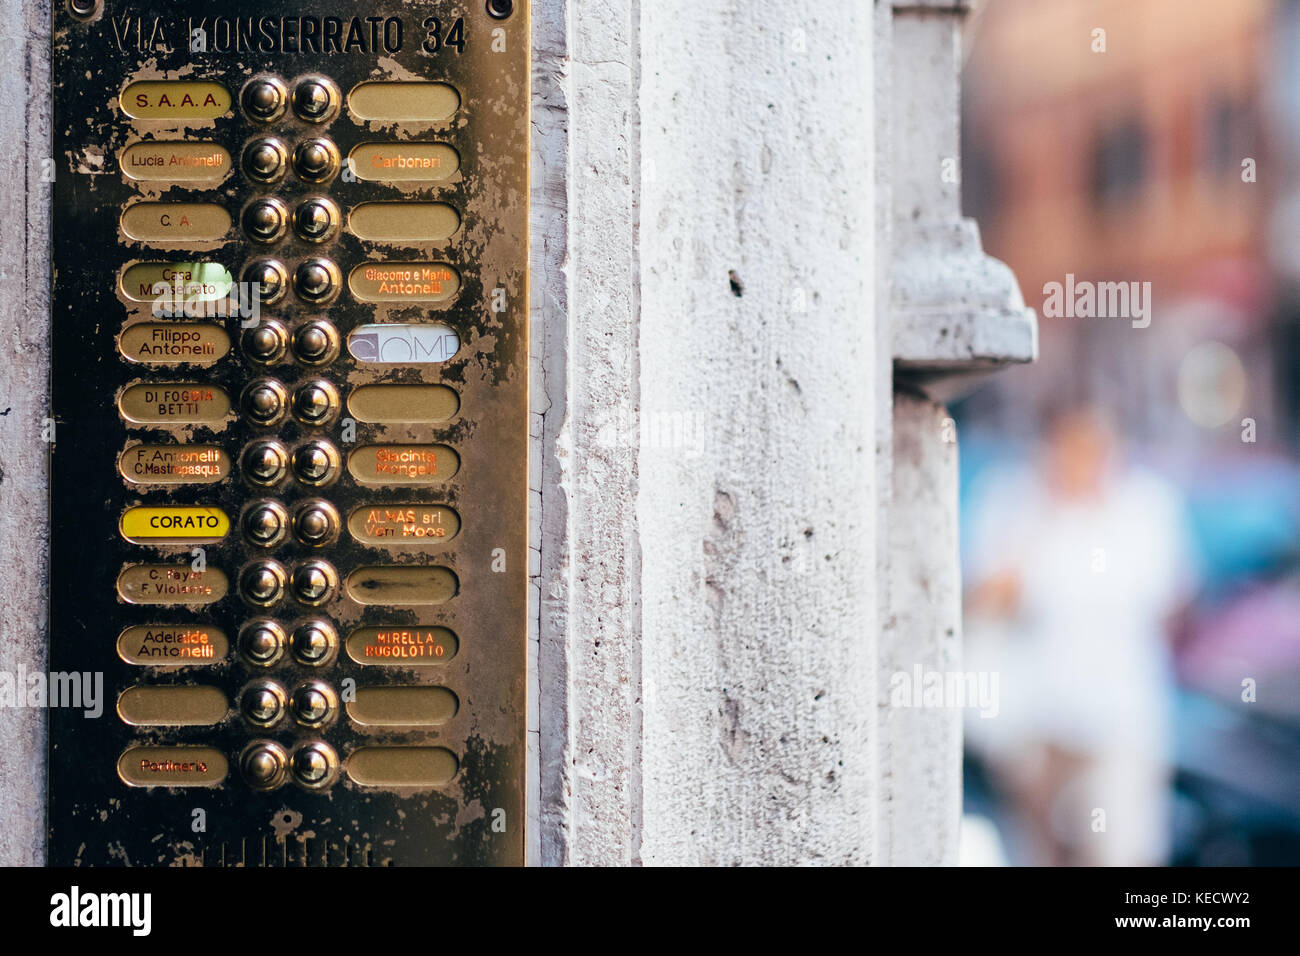 Elegant old doorbells and mismached address and name labels on a building in Rome, Italy - Stock Image